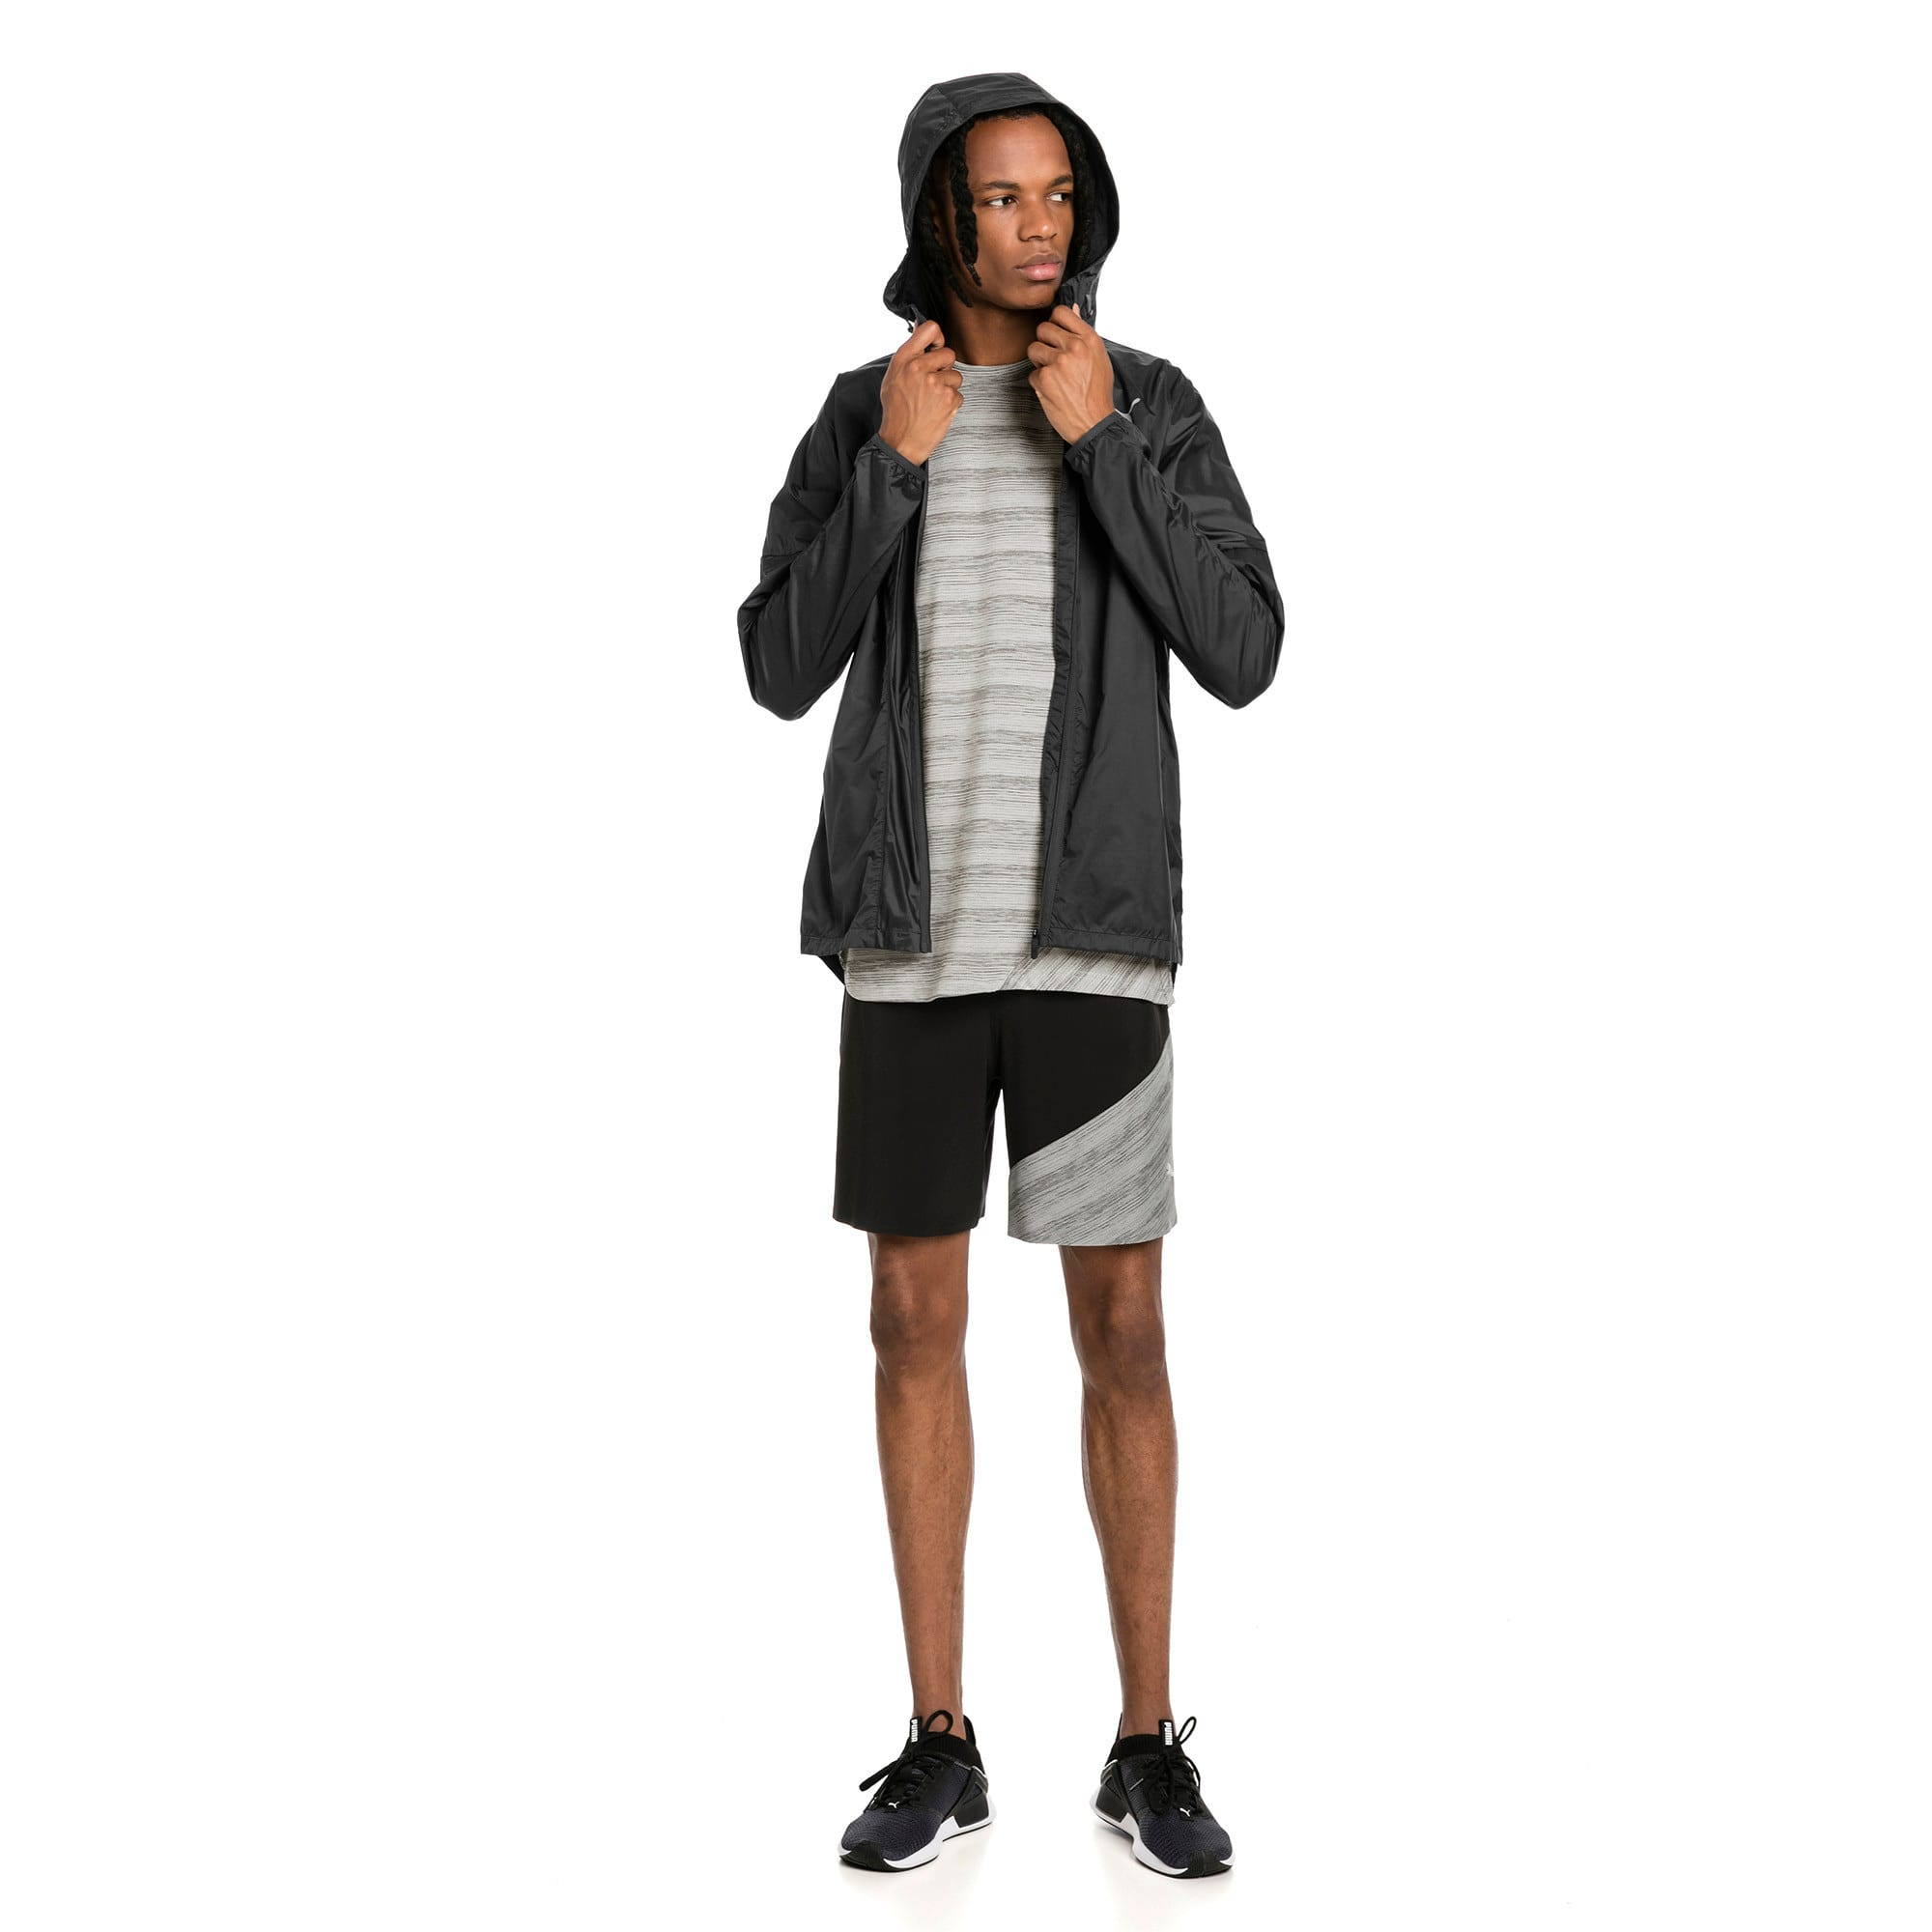 Thumbnail 3 of LastLap Herren Training Jacke, Asphalt Heather, medium